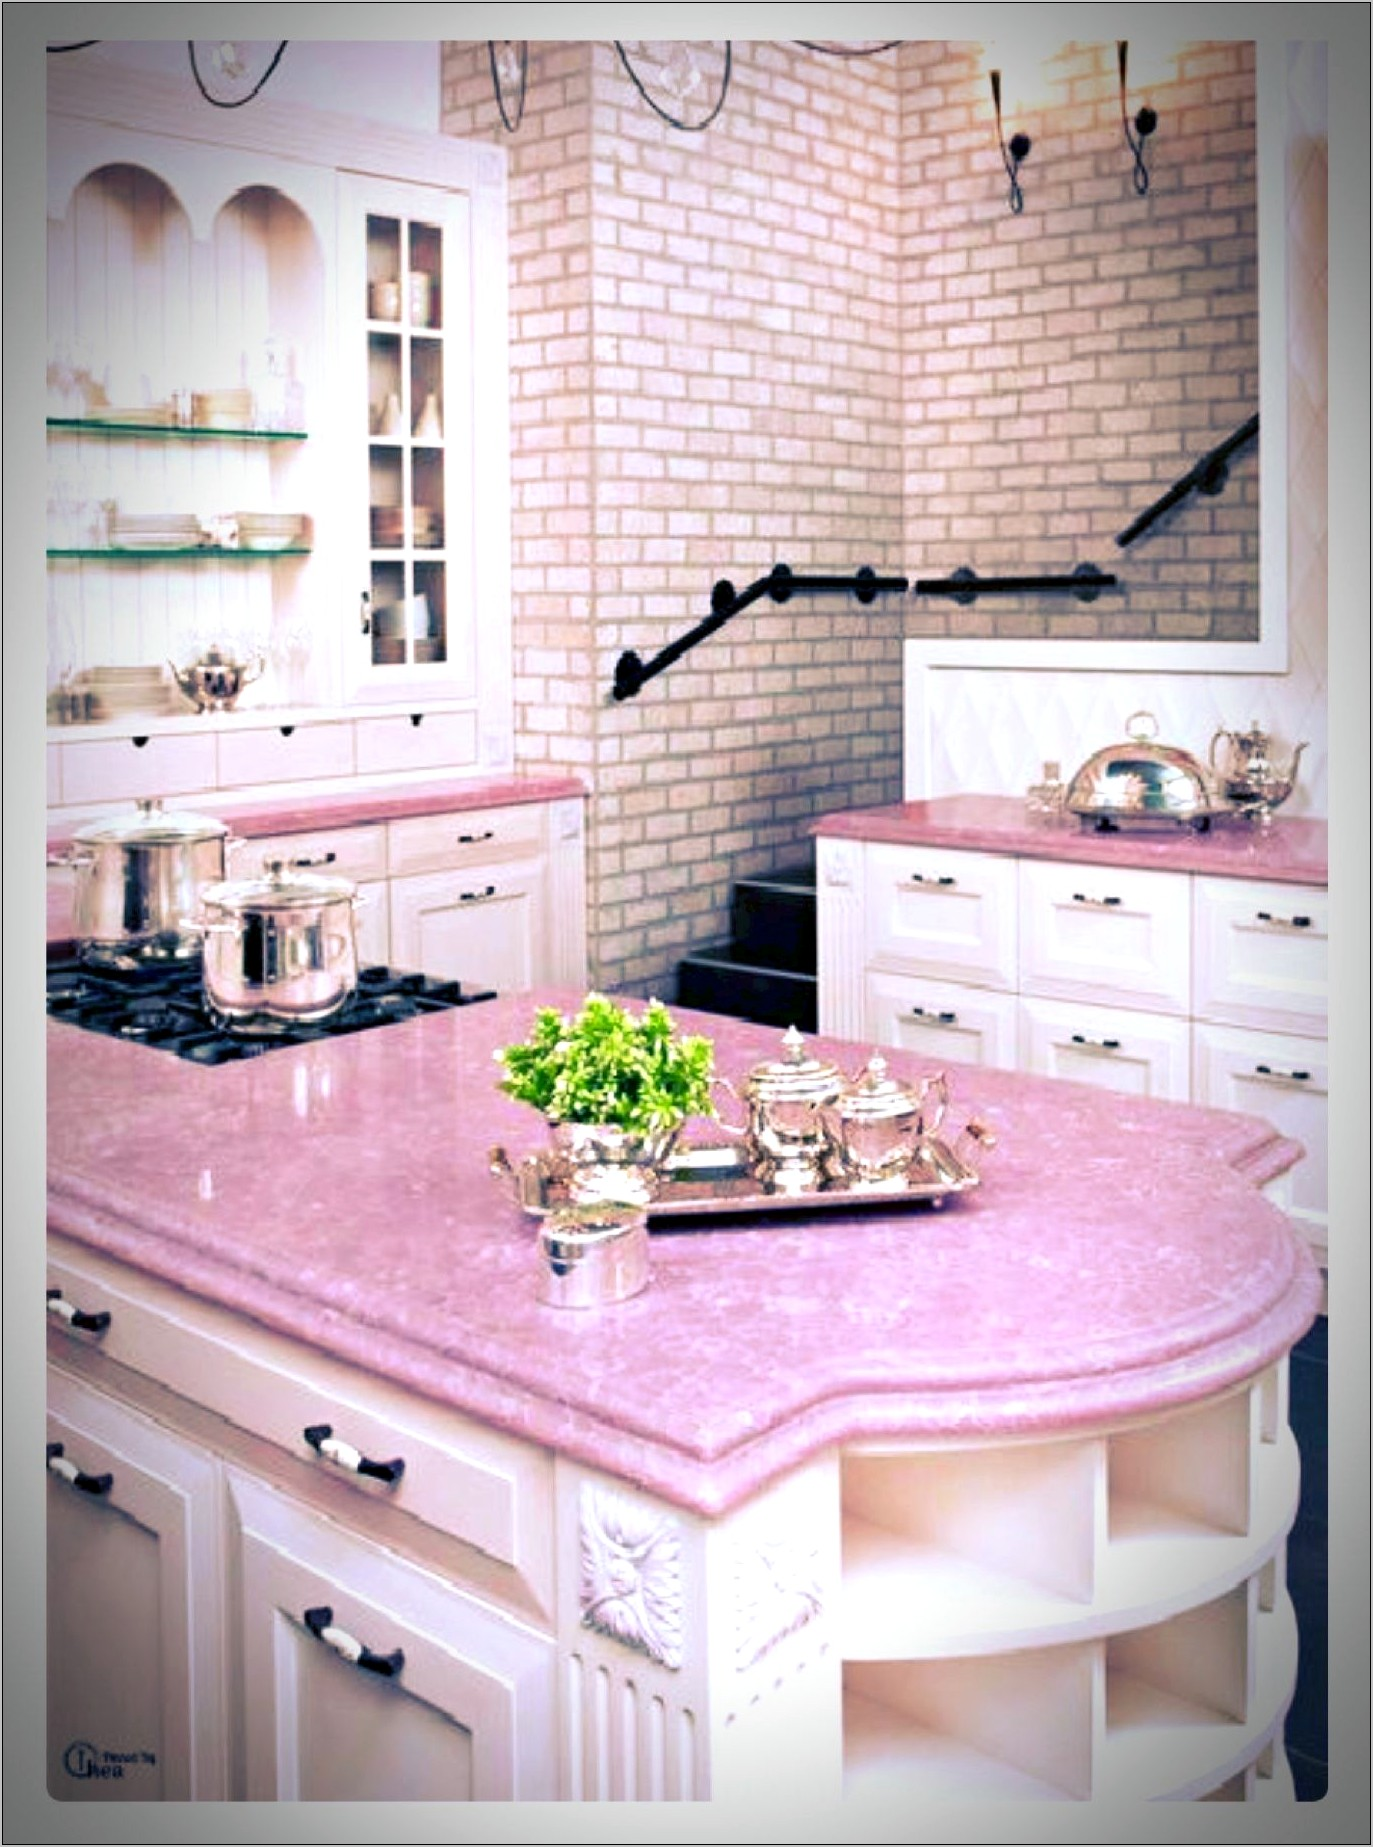 Flamingo Decor Ideas For Small Kitchens Pinterest